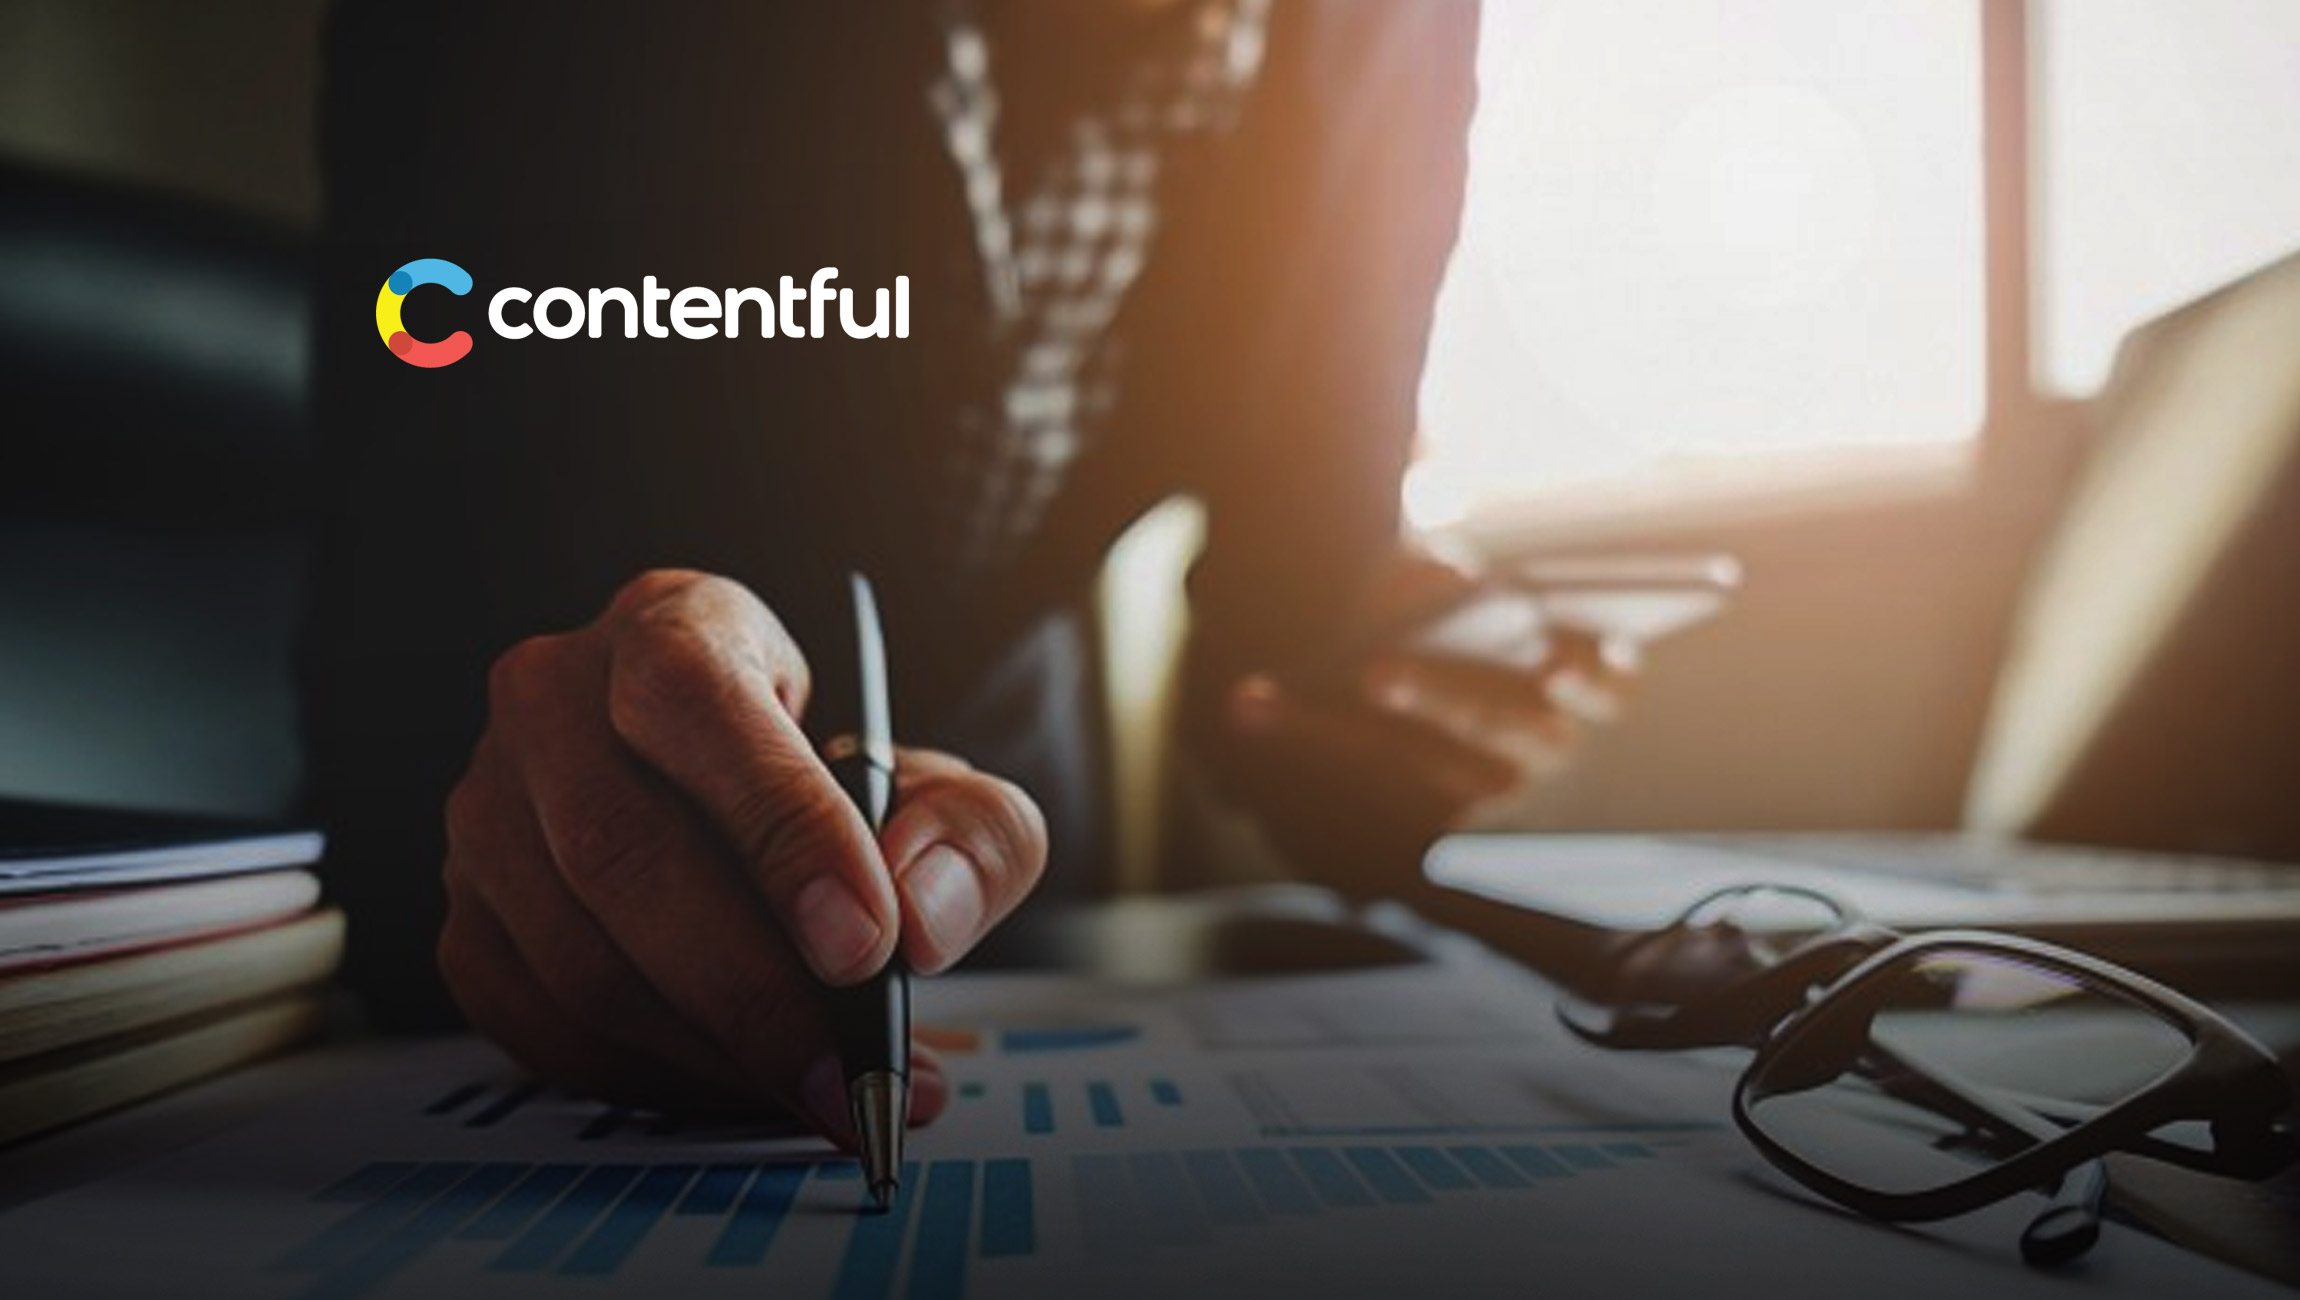 Contentful Recognized As A Strong Performer Among Agile Content Management Systems By Independent Research Firm